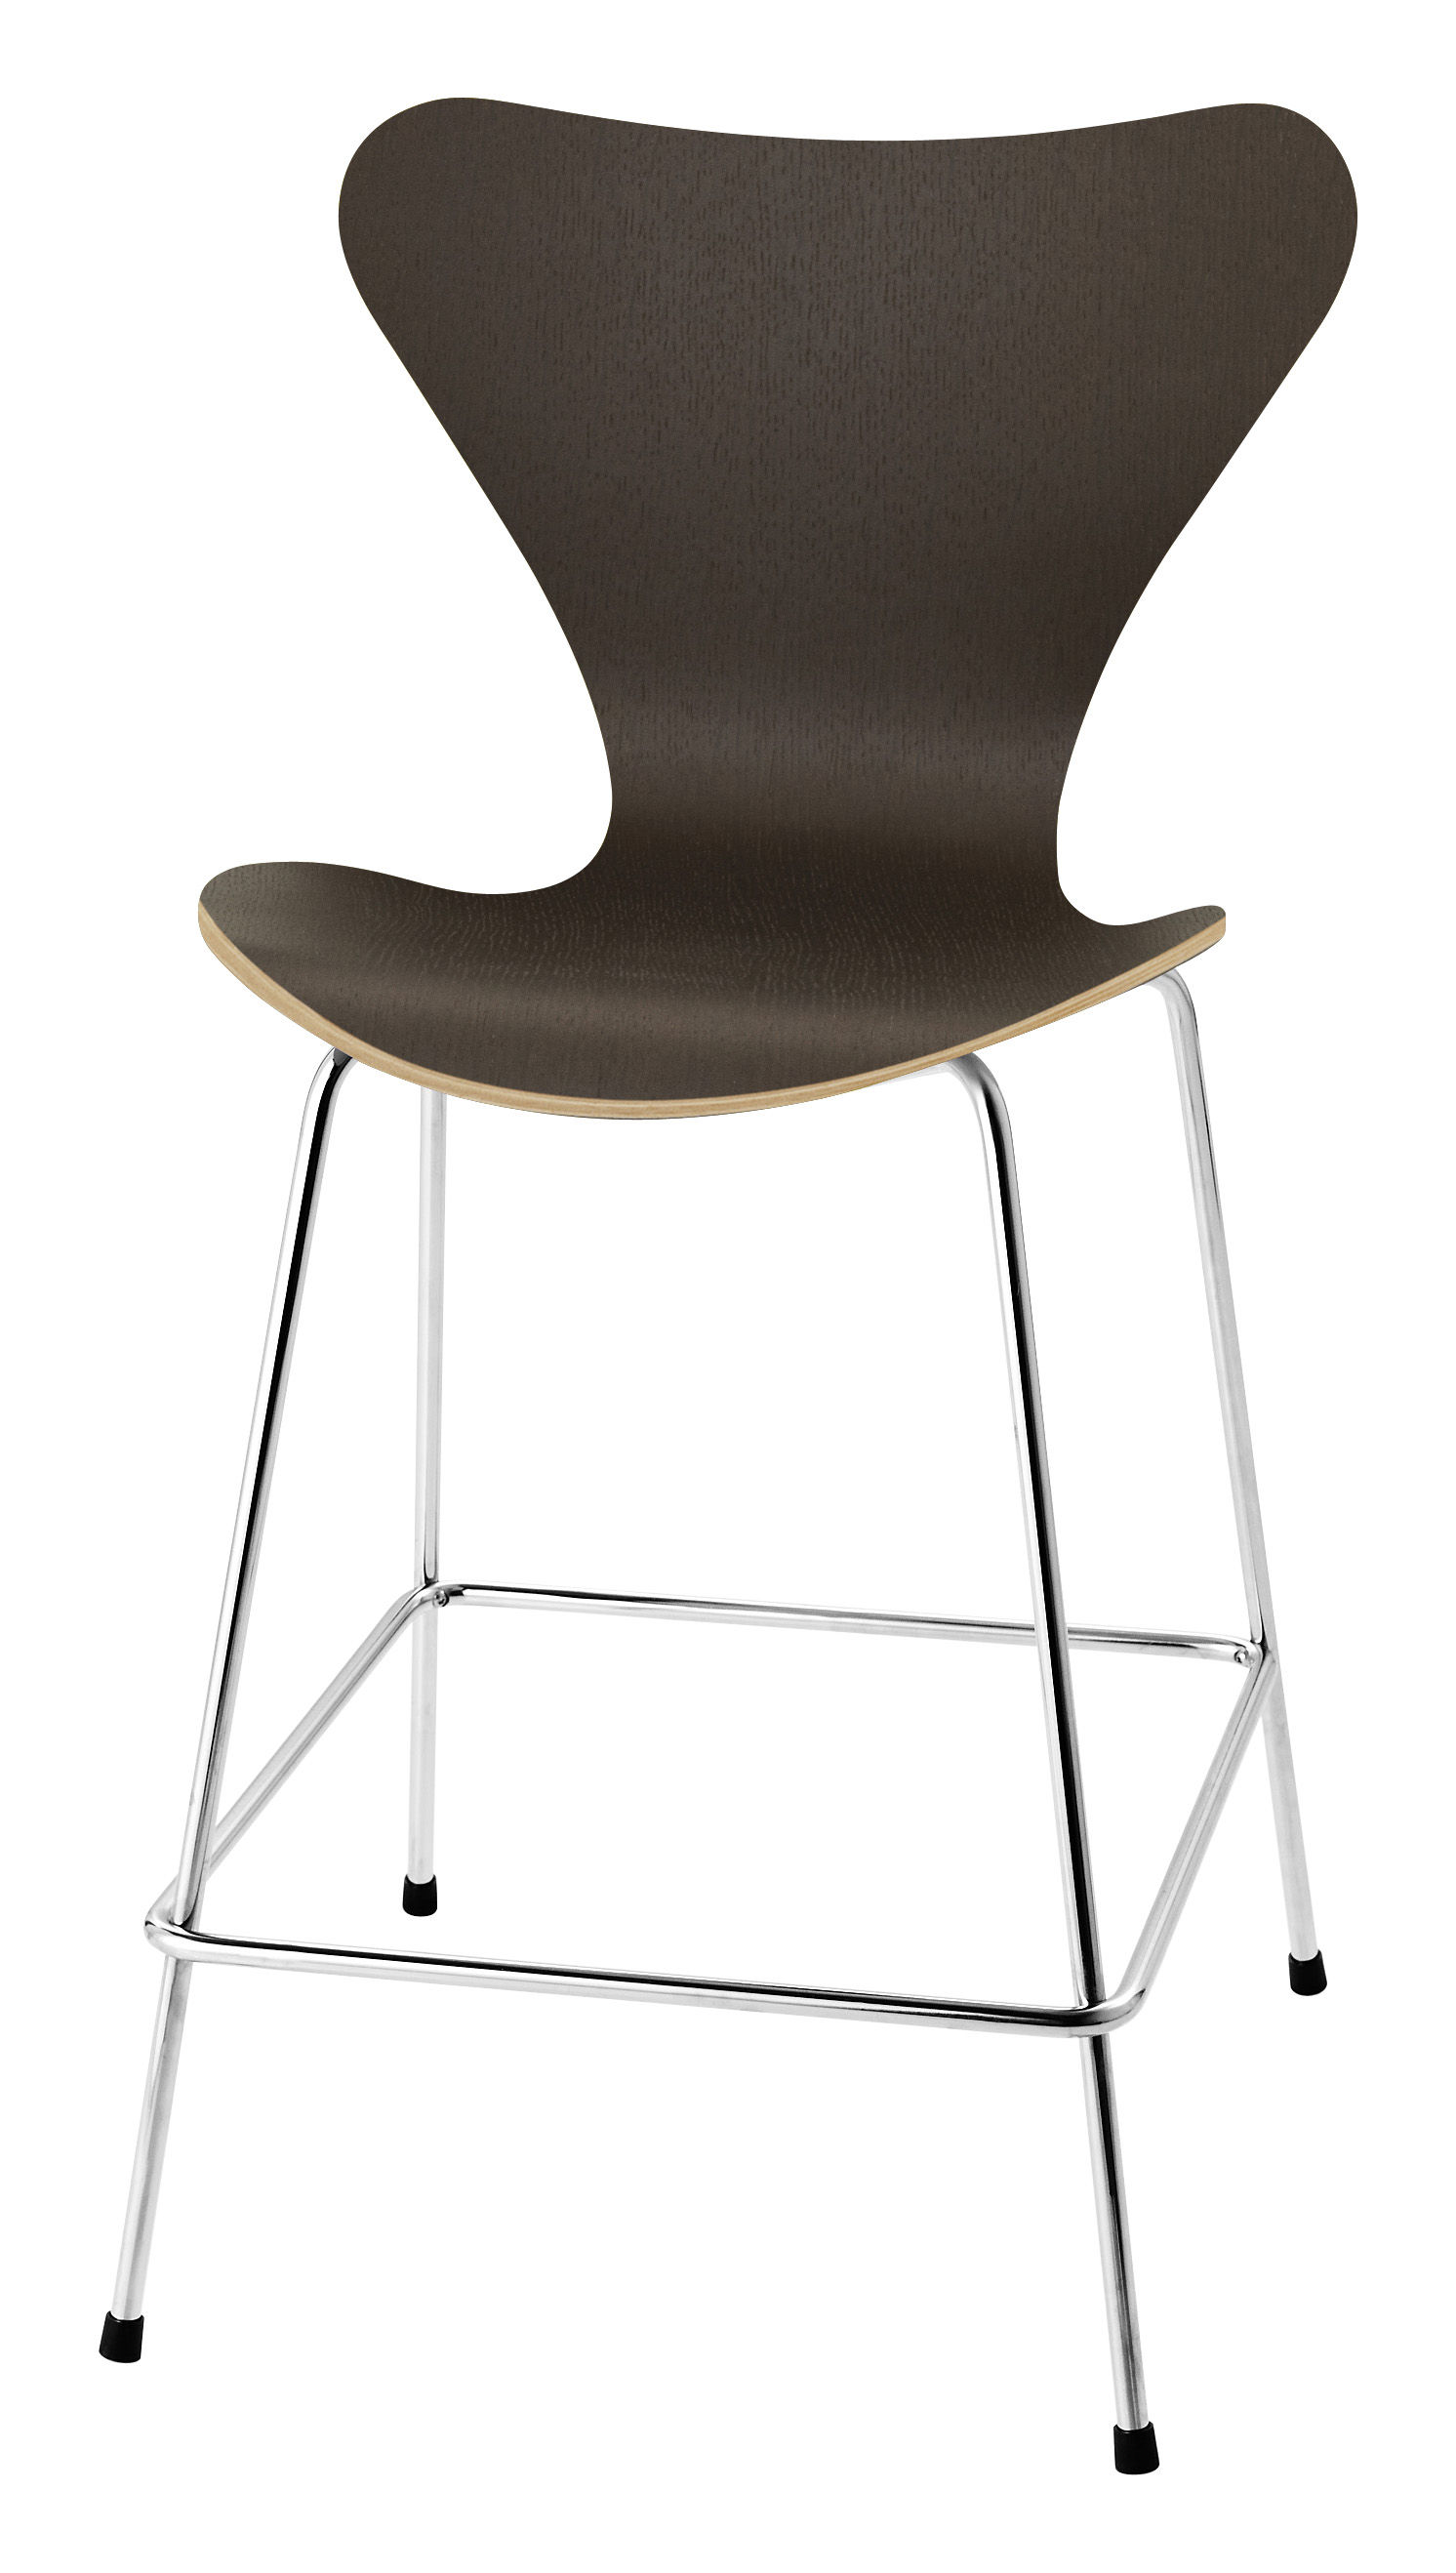 Furniture - Bar Stools - Série 7 Bar chair - H 76 cm - Natural wood by Fritz Hansen - Dark oak - Steel, Varnished stained oak plywood